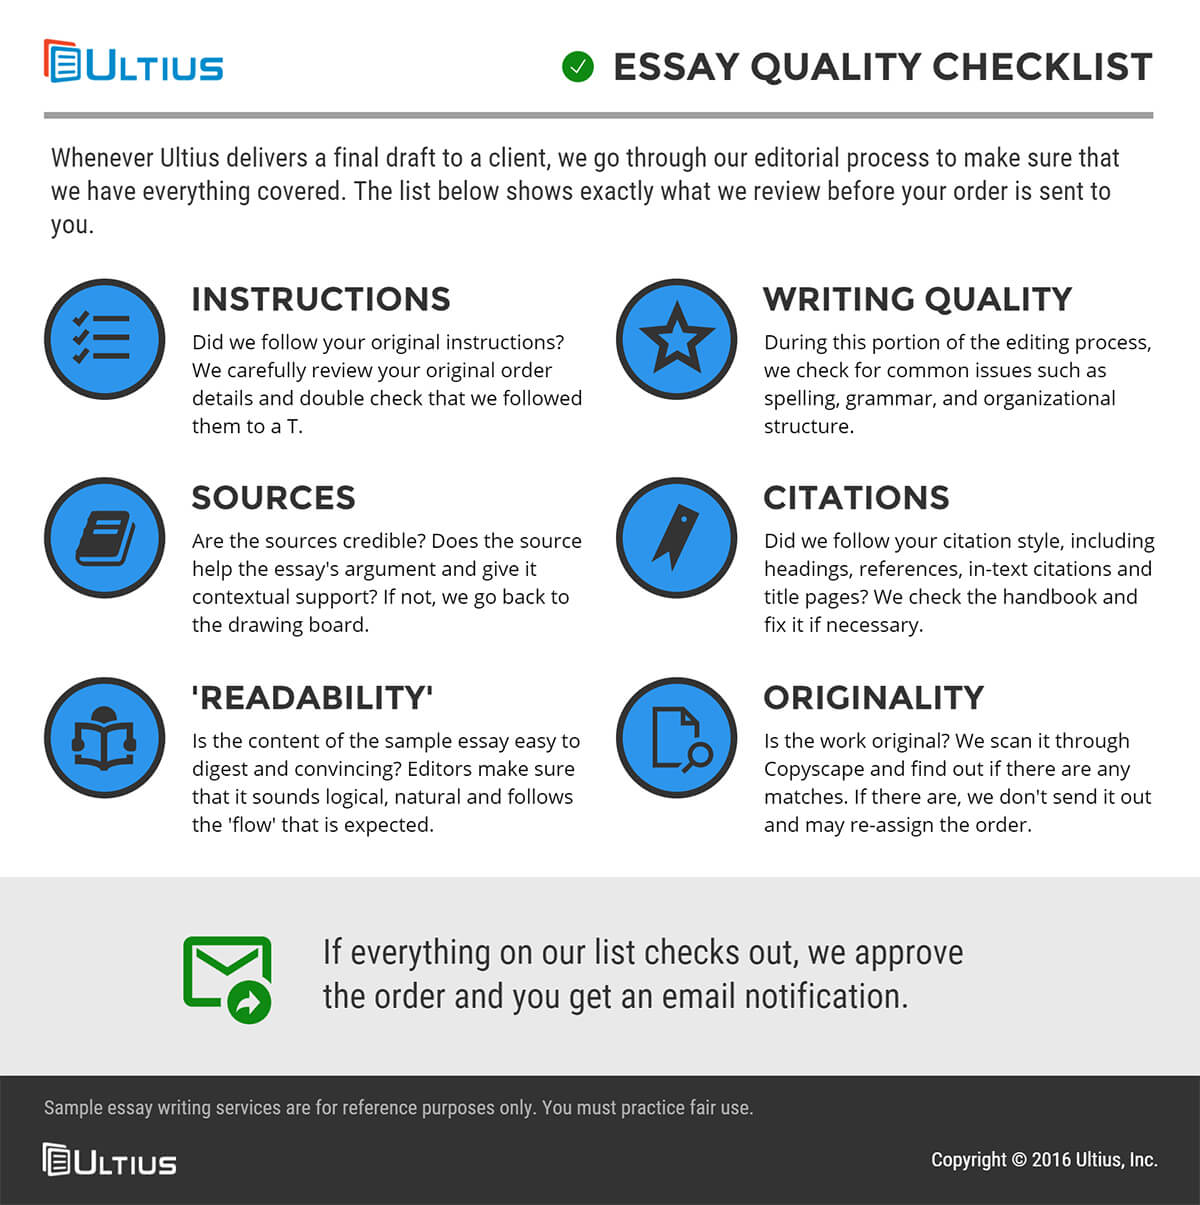 buy essay online 100% original american writers  purchased essay quality checklist